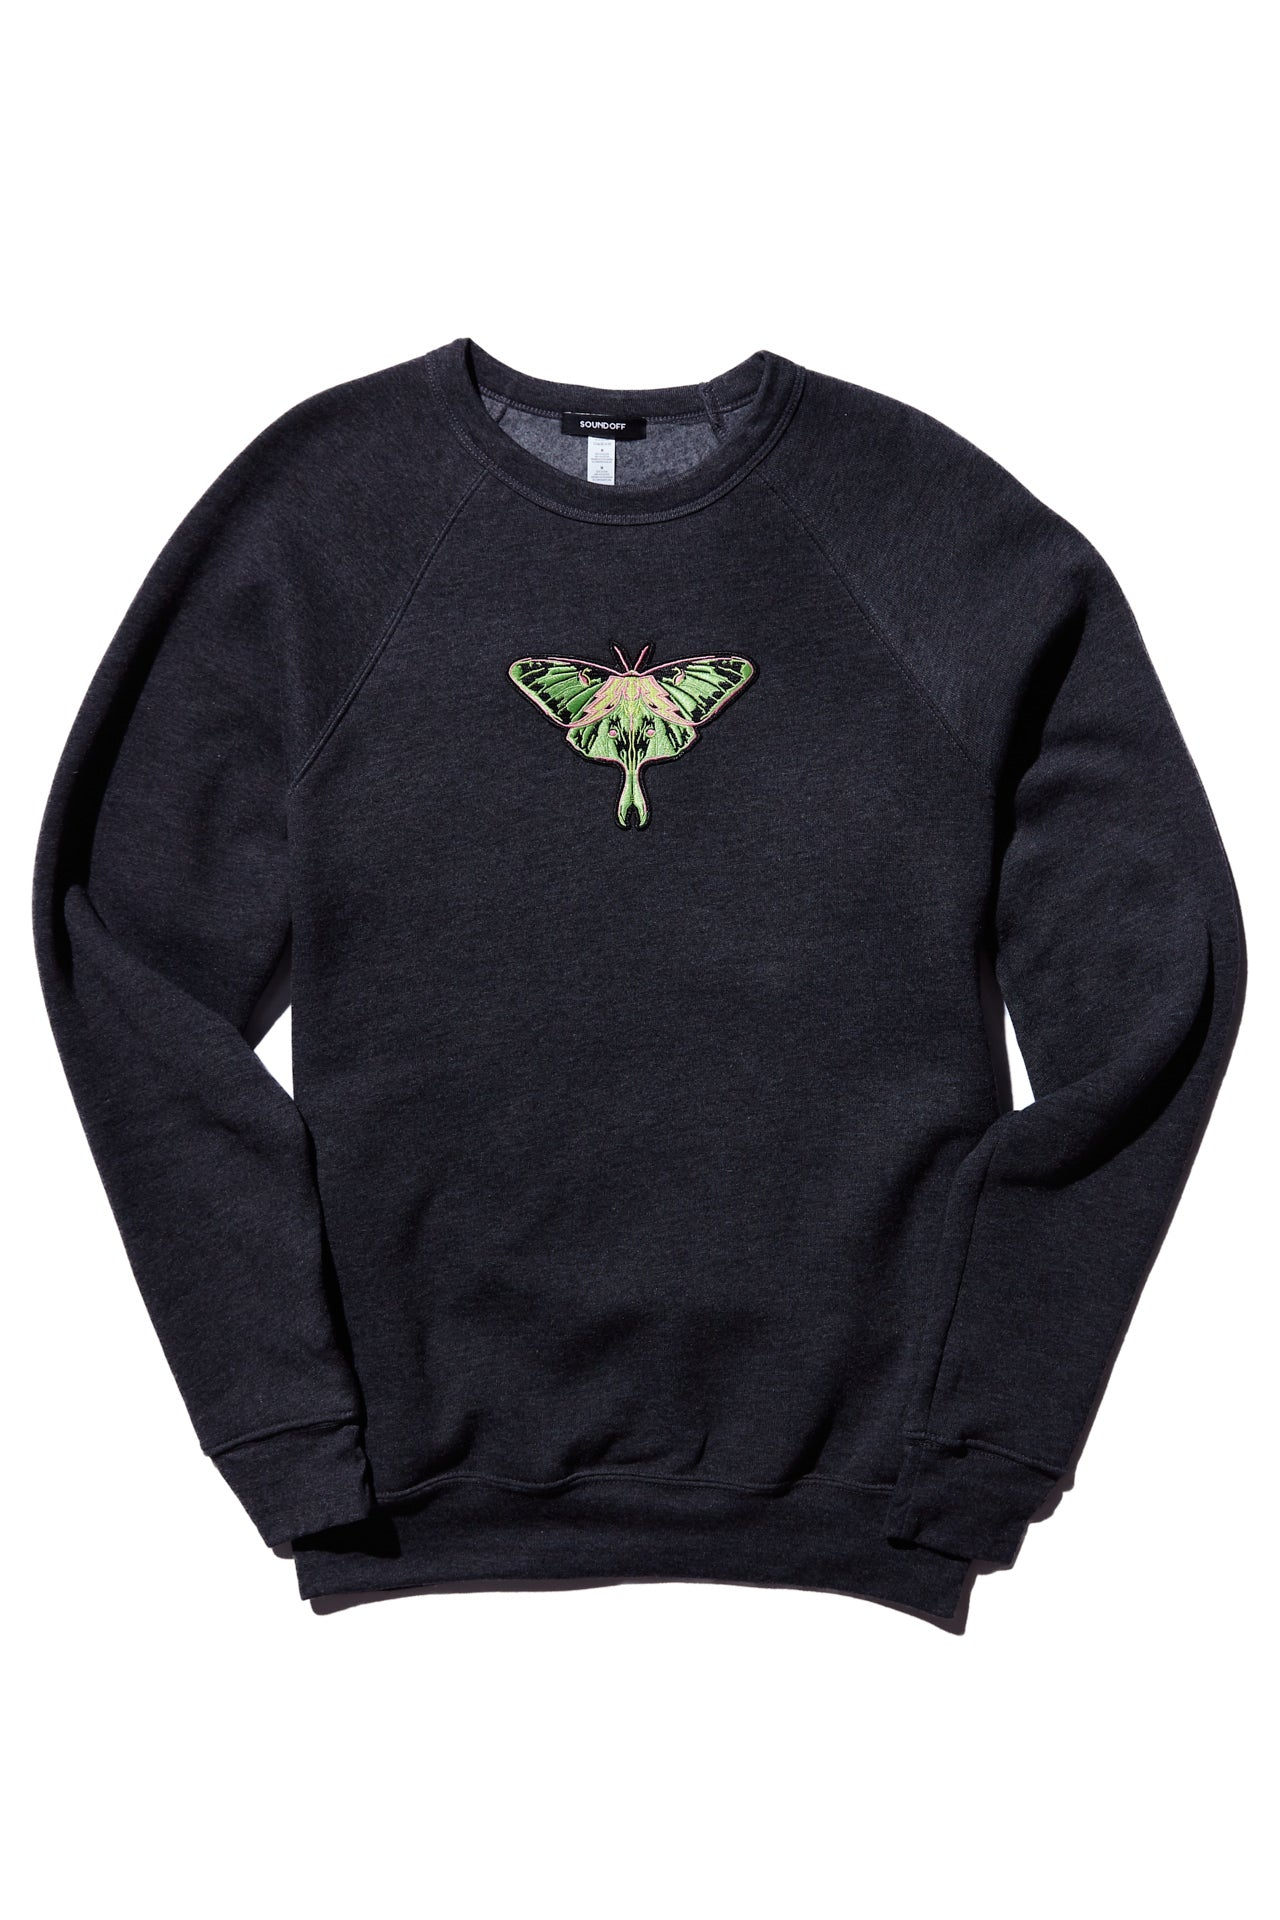 A MOTH TO A FLAME CREW SWEATSHIRT; DARK GRAY HEATHER